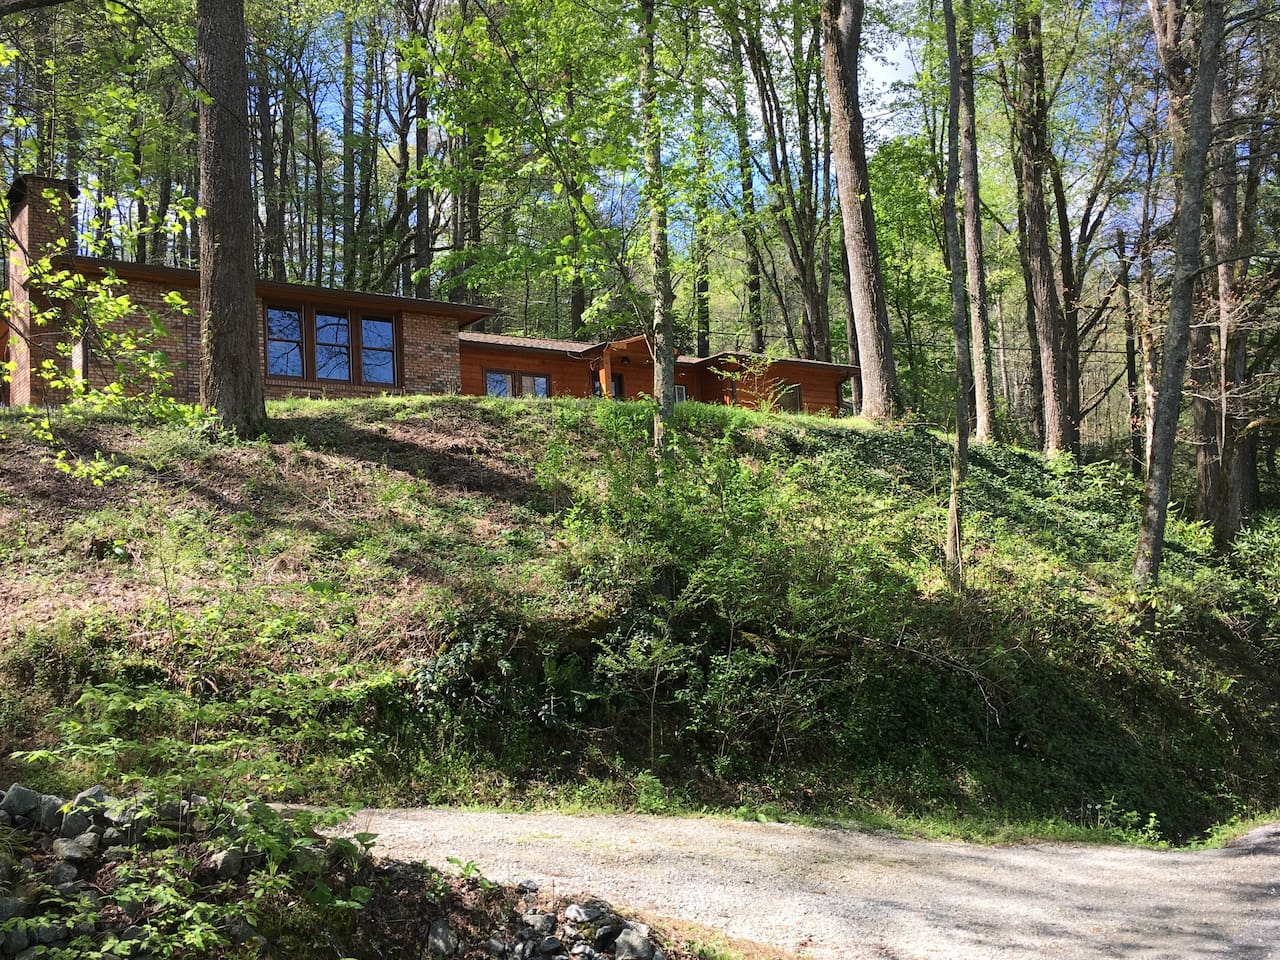 The house is perched up on a hill overlooking the Wolffork Valley